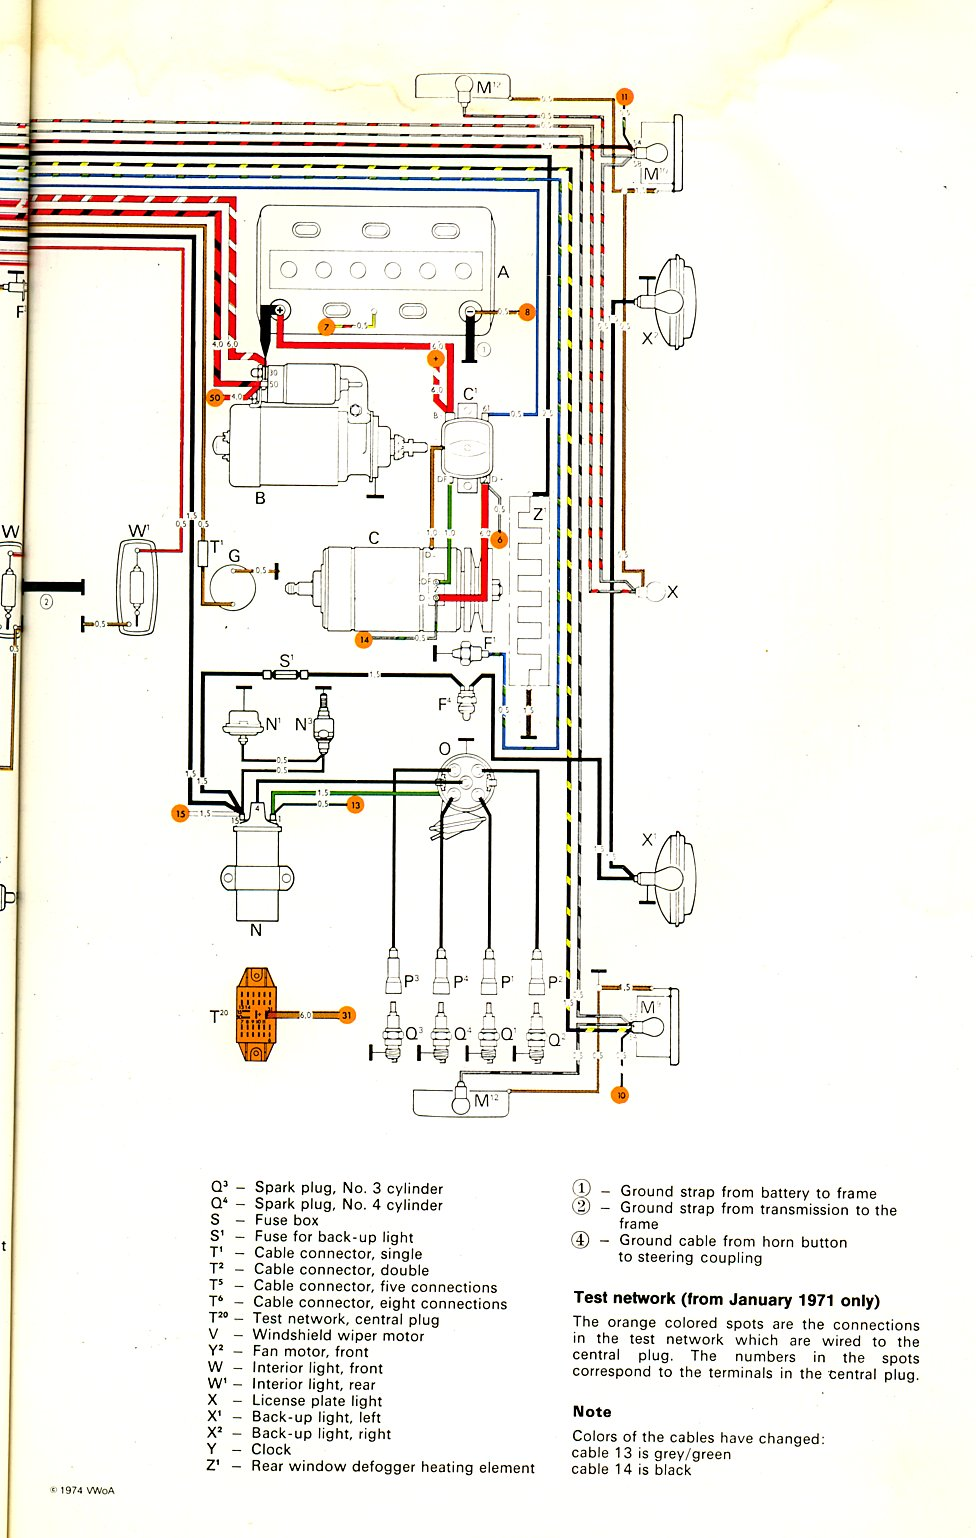 87 Mercedes Fuse Box Vw Vanagon Diagram Wiring Will Be A Thing Thesamba Com Type 2 Diagrams Rh 1985 1987